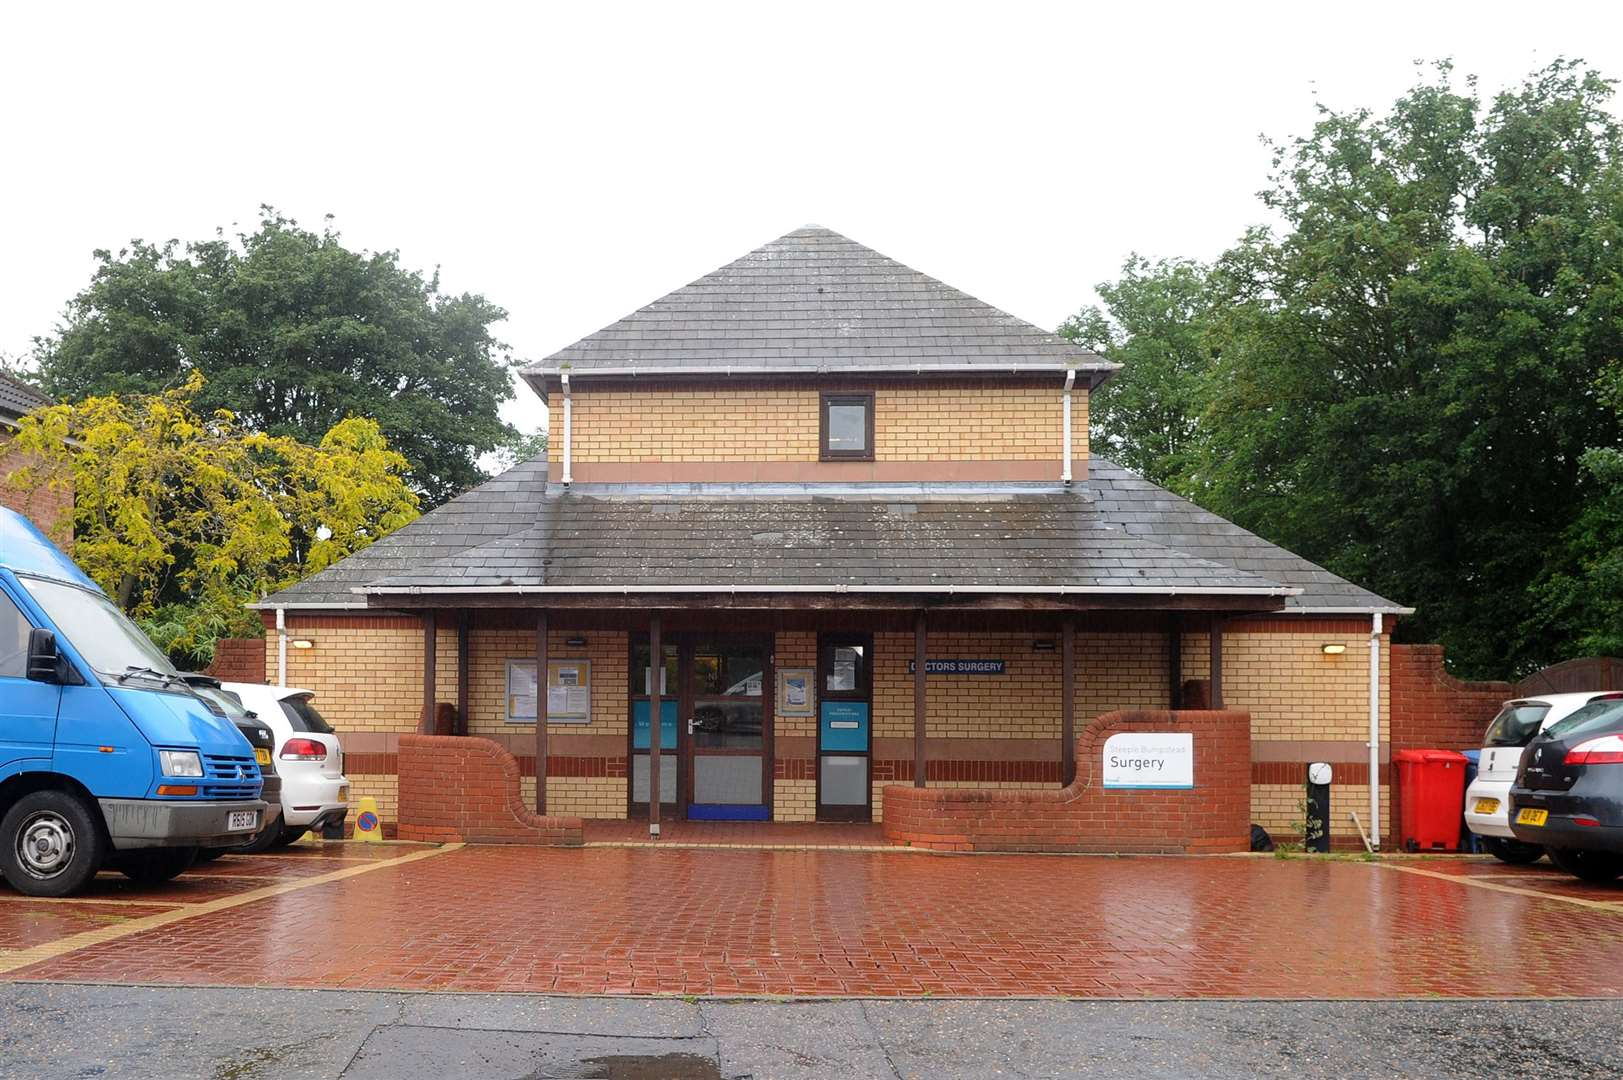 Steeple Bumpstead Surgery has been rated inadequate after a Care Quality Commission inspection. Picture by Mecha Morton.